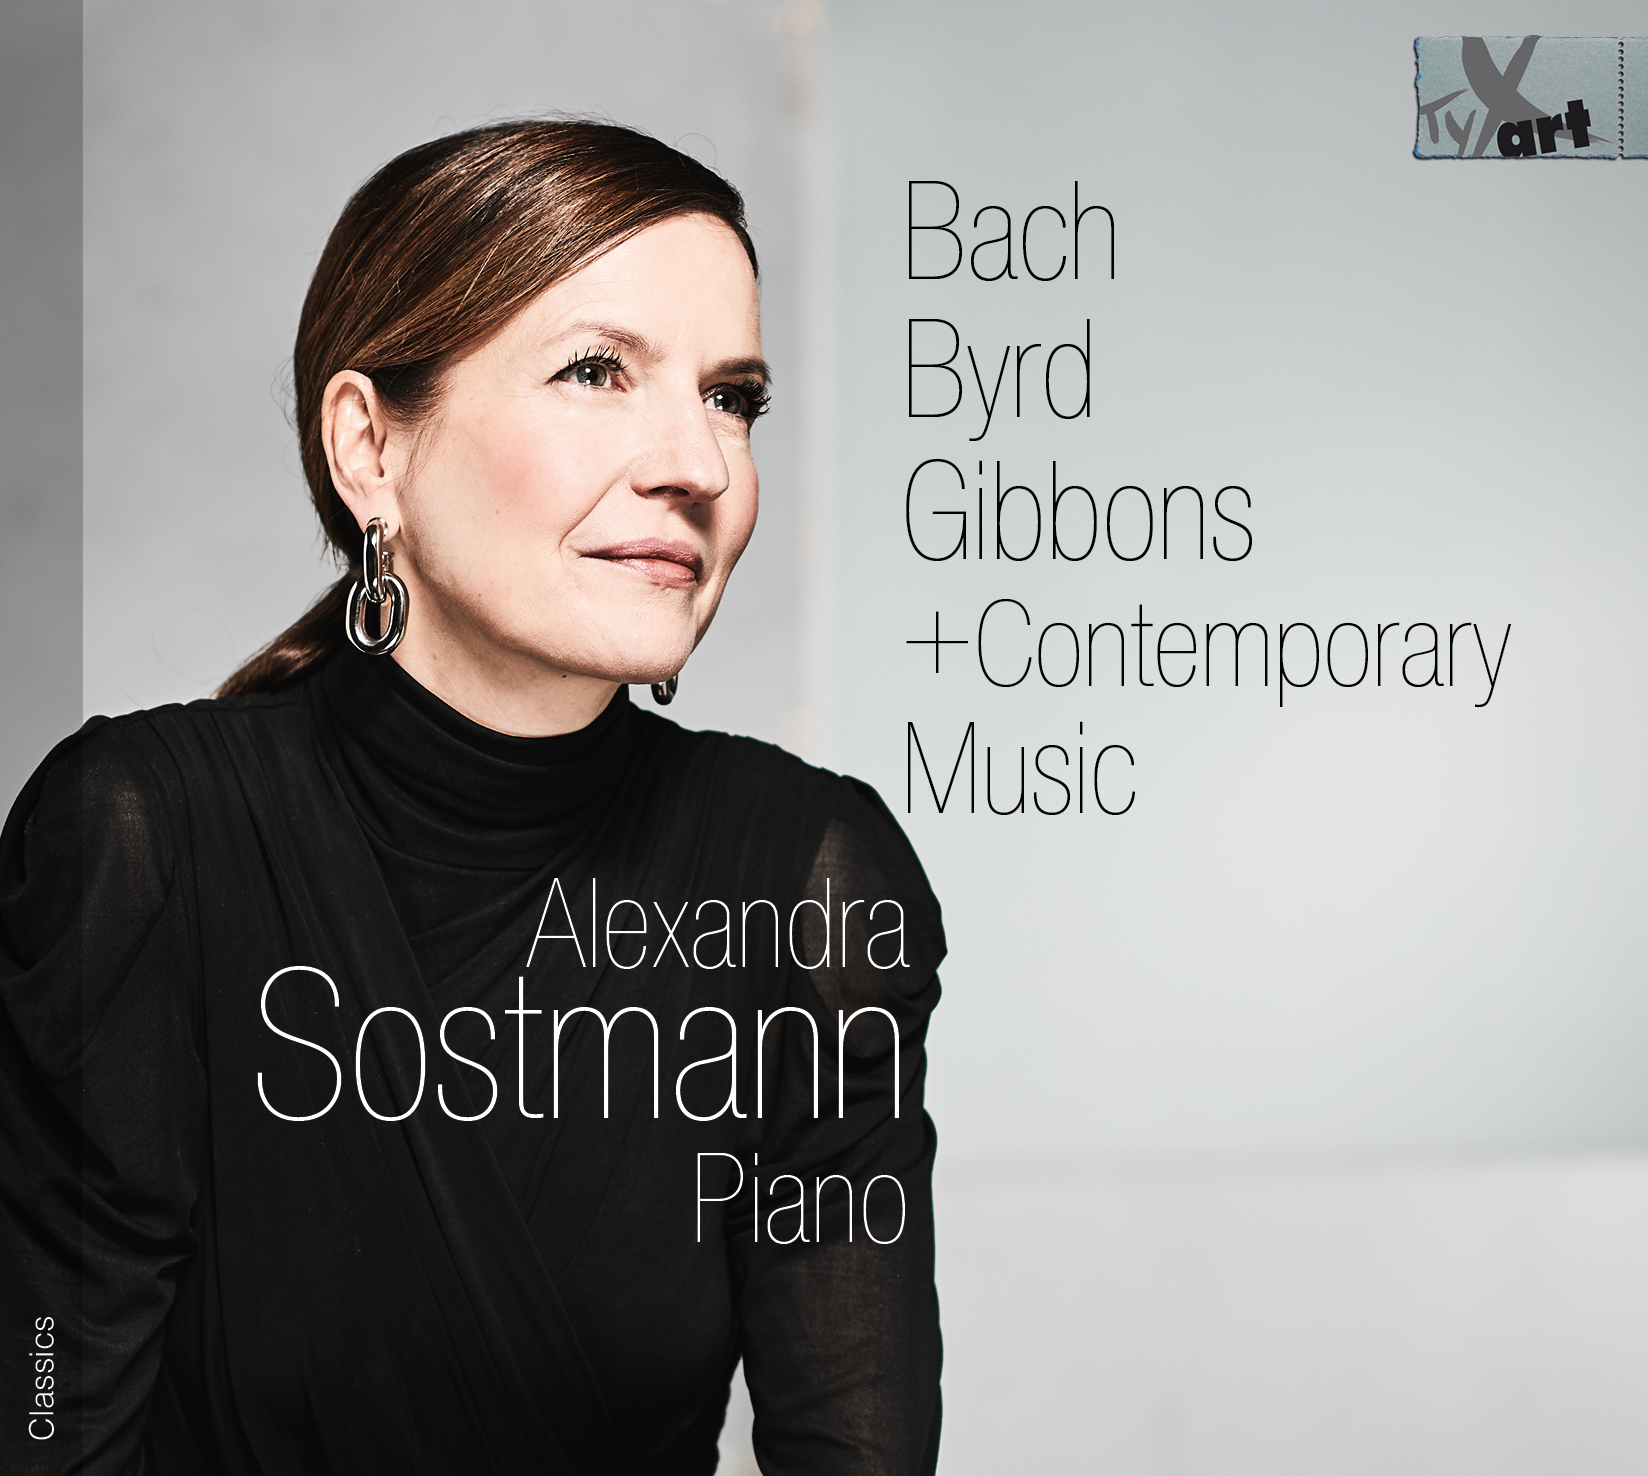 Bach / Byrd / Gibbons + Contemporary Music - Alexandra Sostmann, Piano